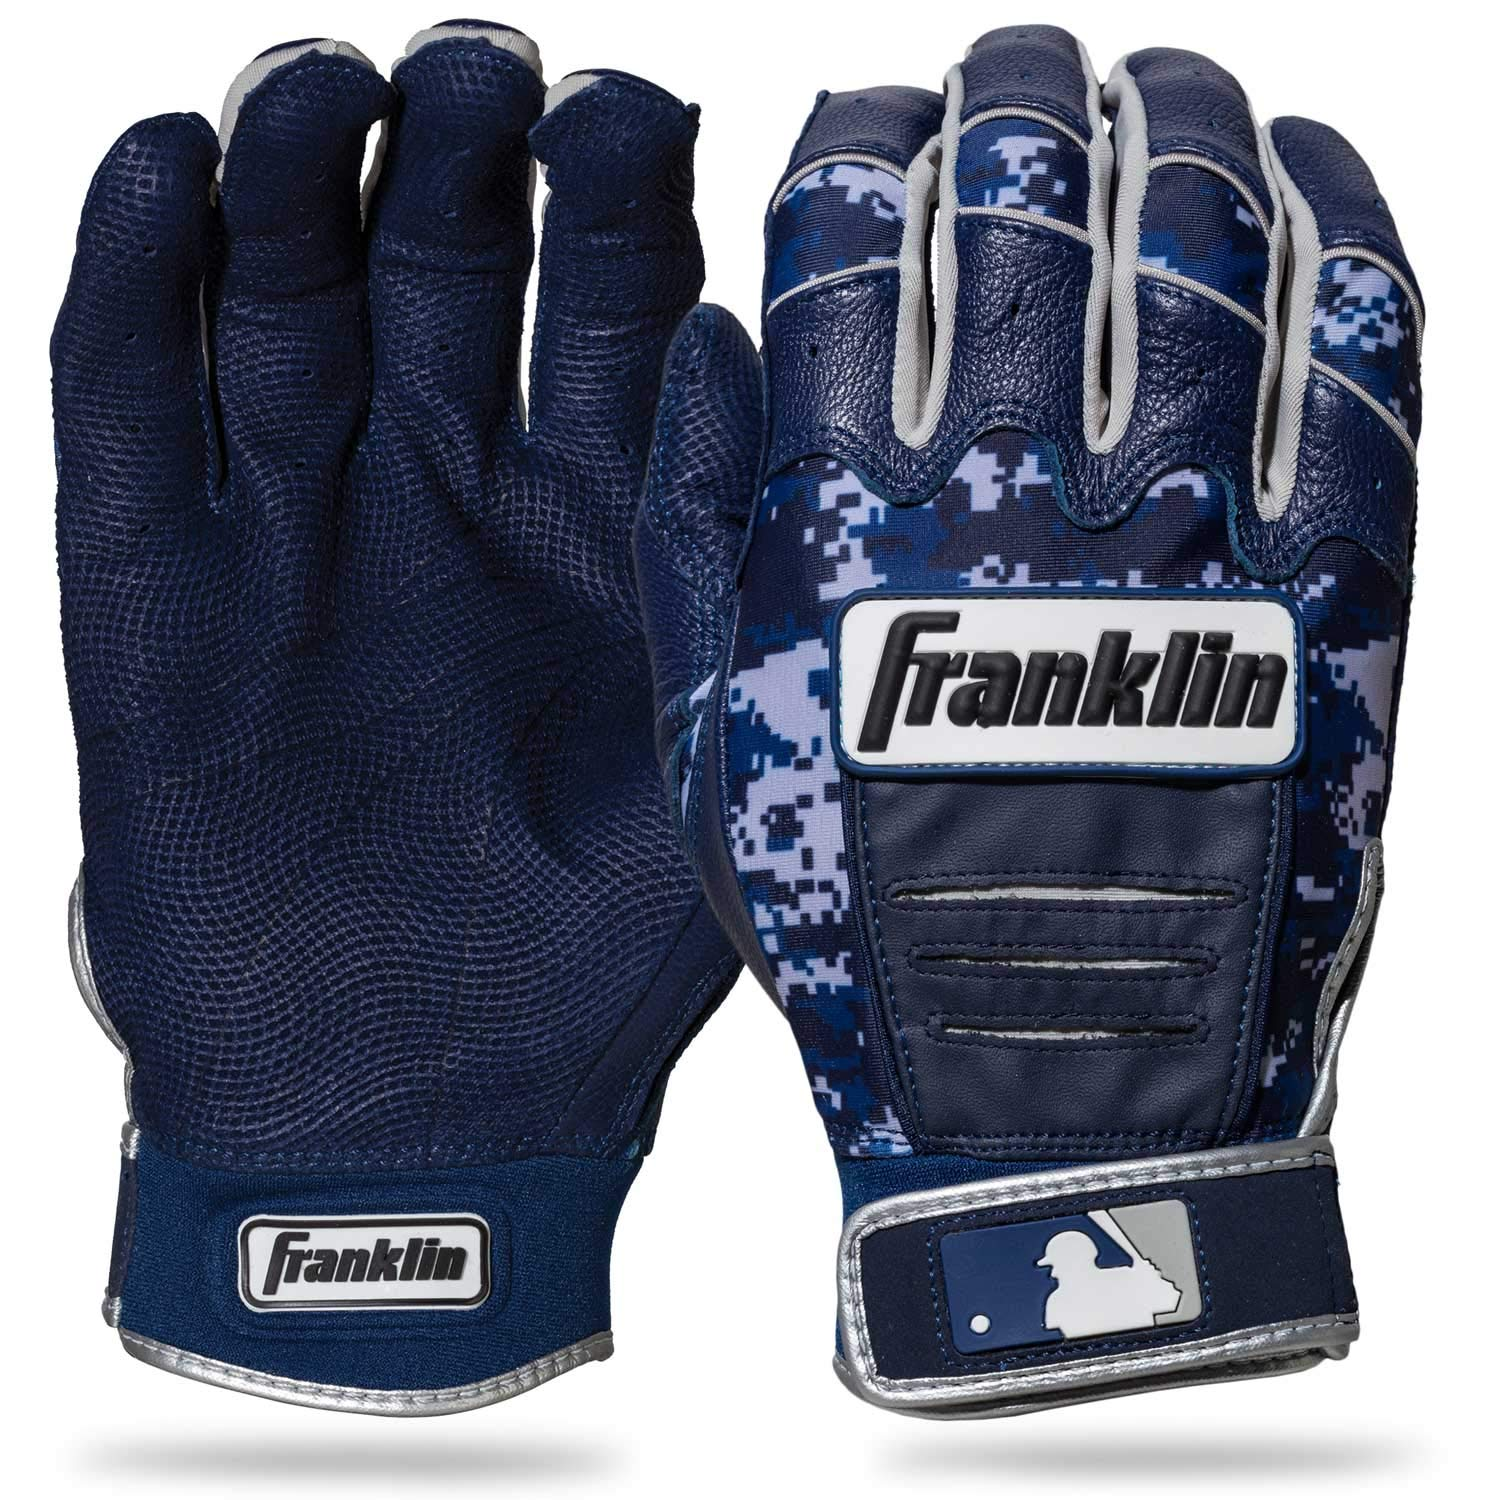 Franklin Sports CFX Pro Digi Series Batting Gloves Navy/Navy Camo Adult Small by Franklin Sports (Image #1)